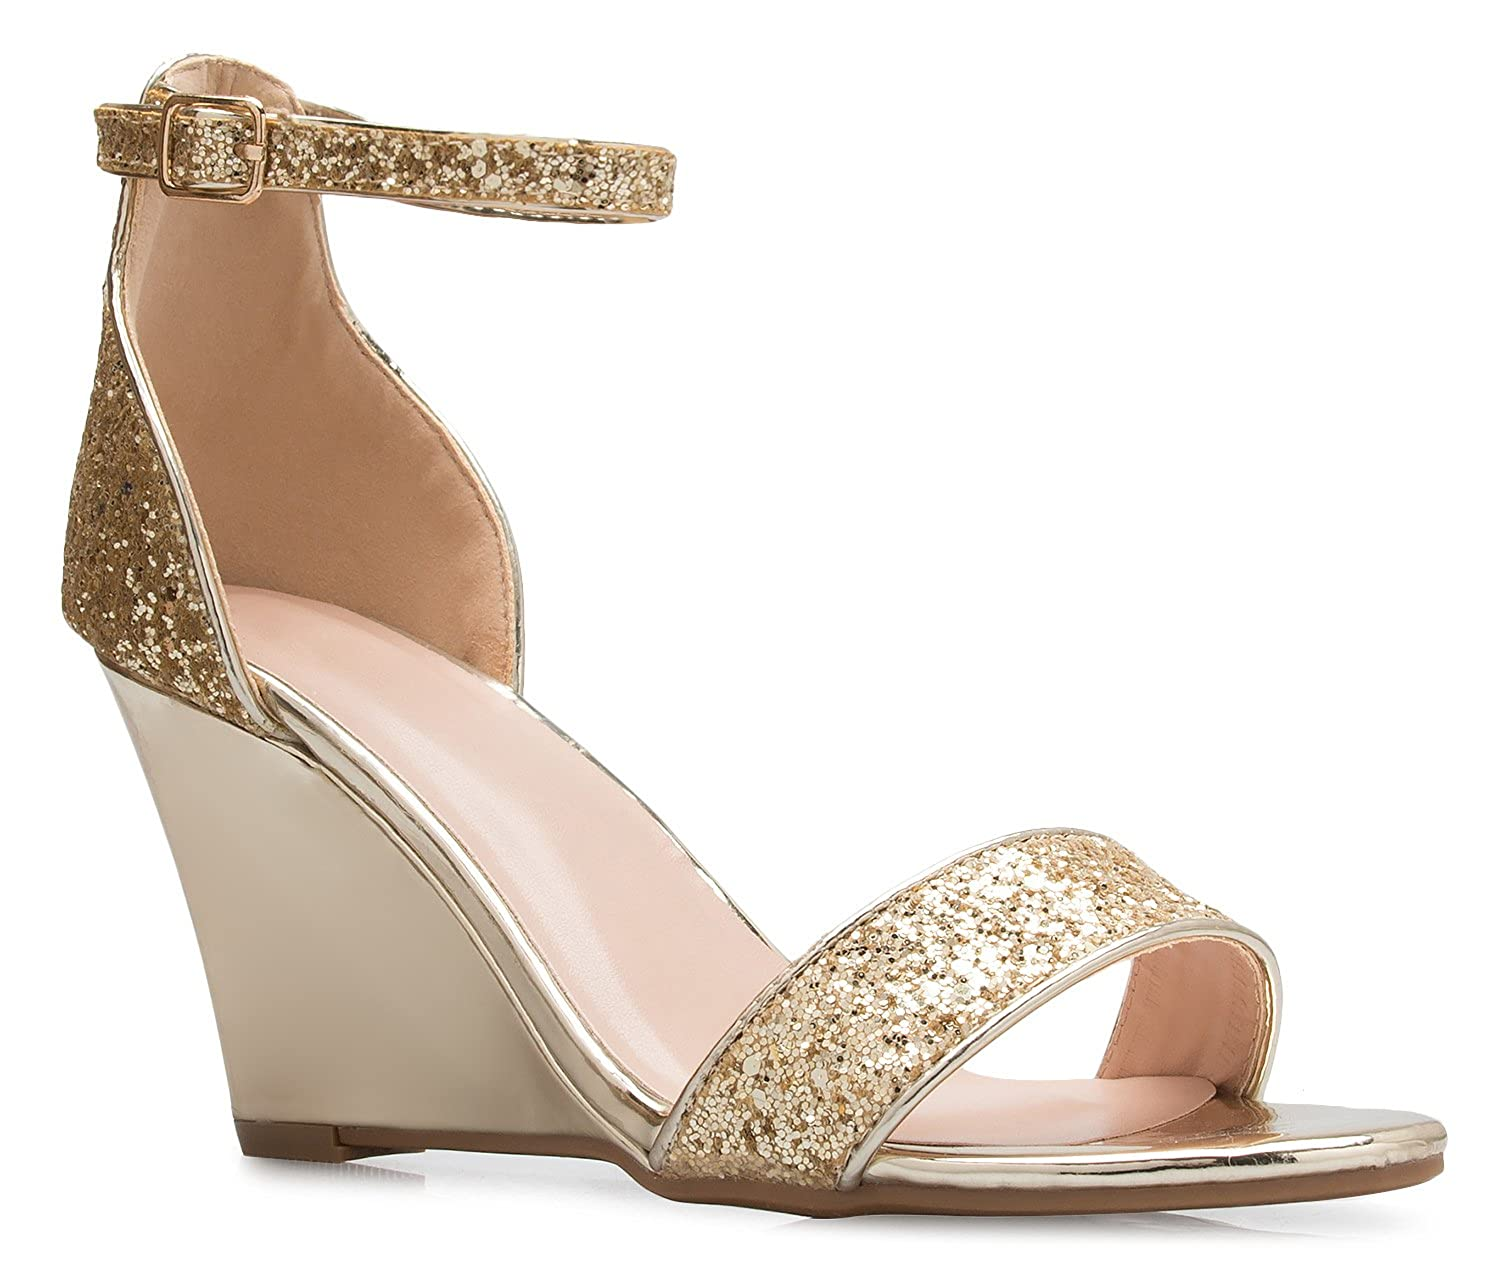 2b28a3c3e62128 OLIVIA K Womens Ankle Strap Wedge Heel Sandals - Adorable Glitter ...